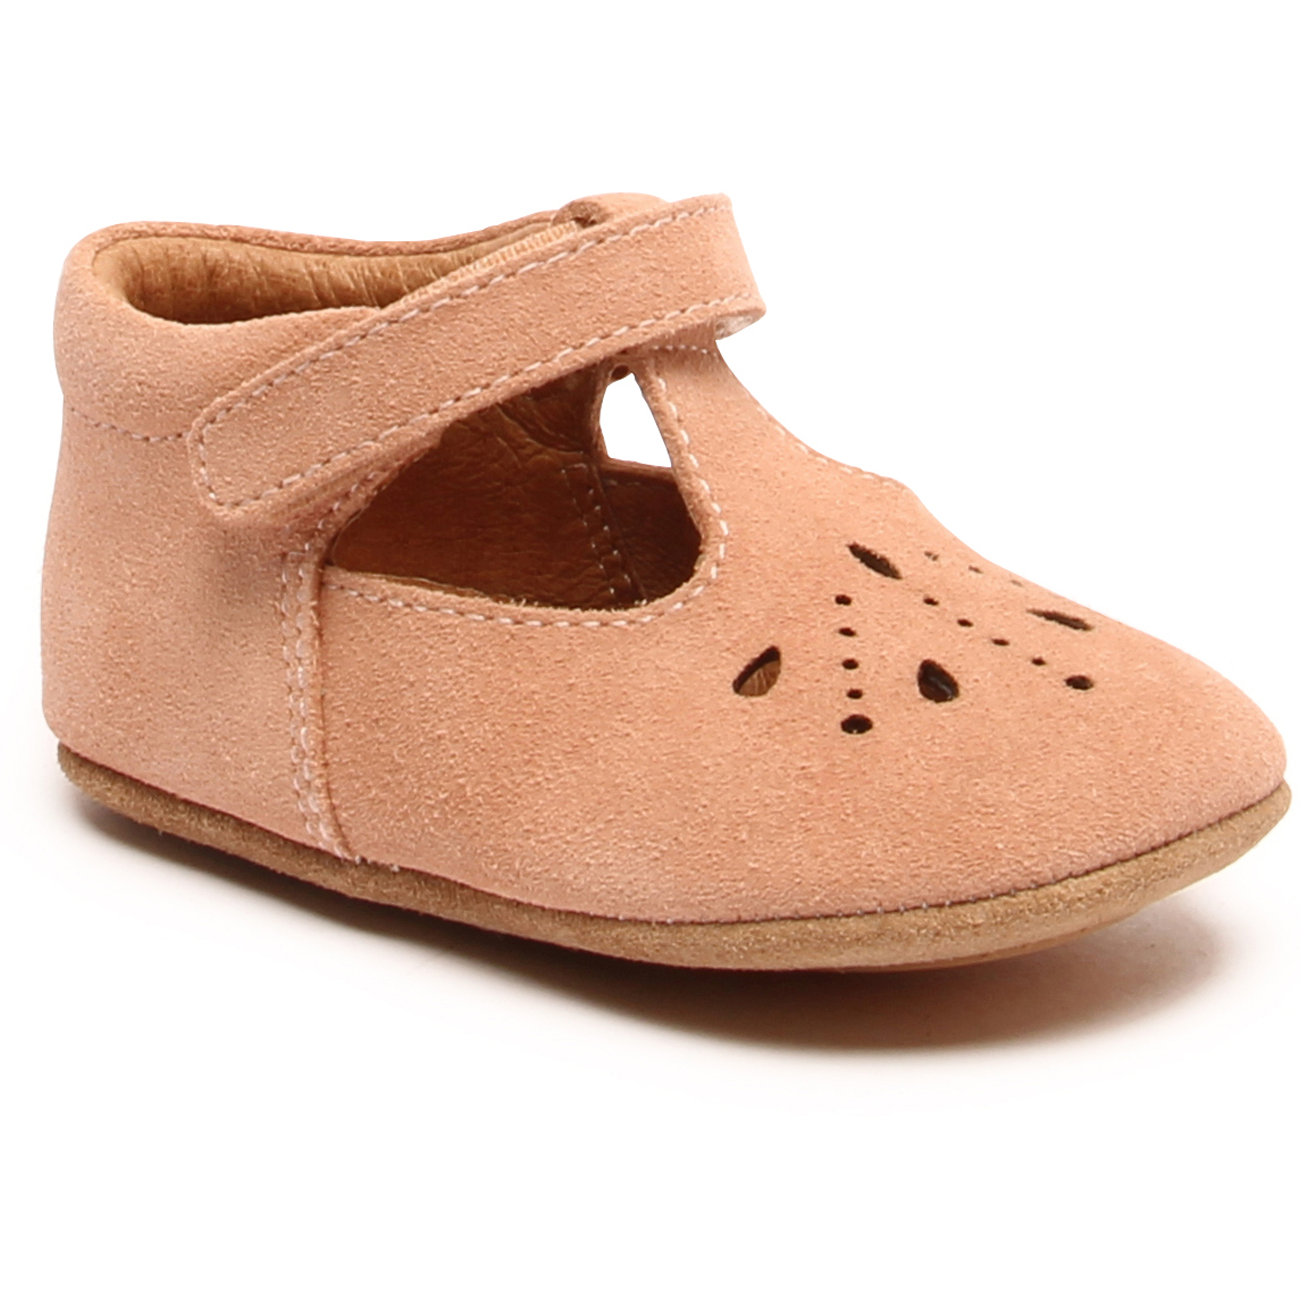 Bisgaard-nude-futter-home-shoes-velcro-peach